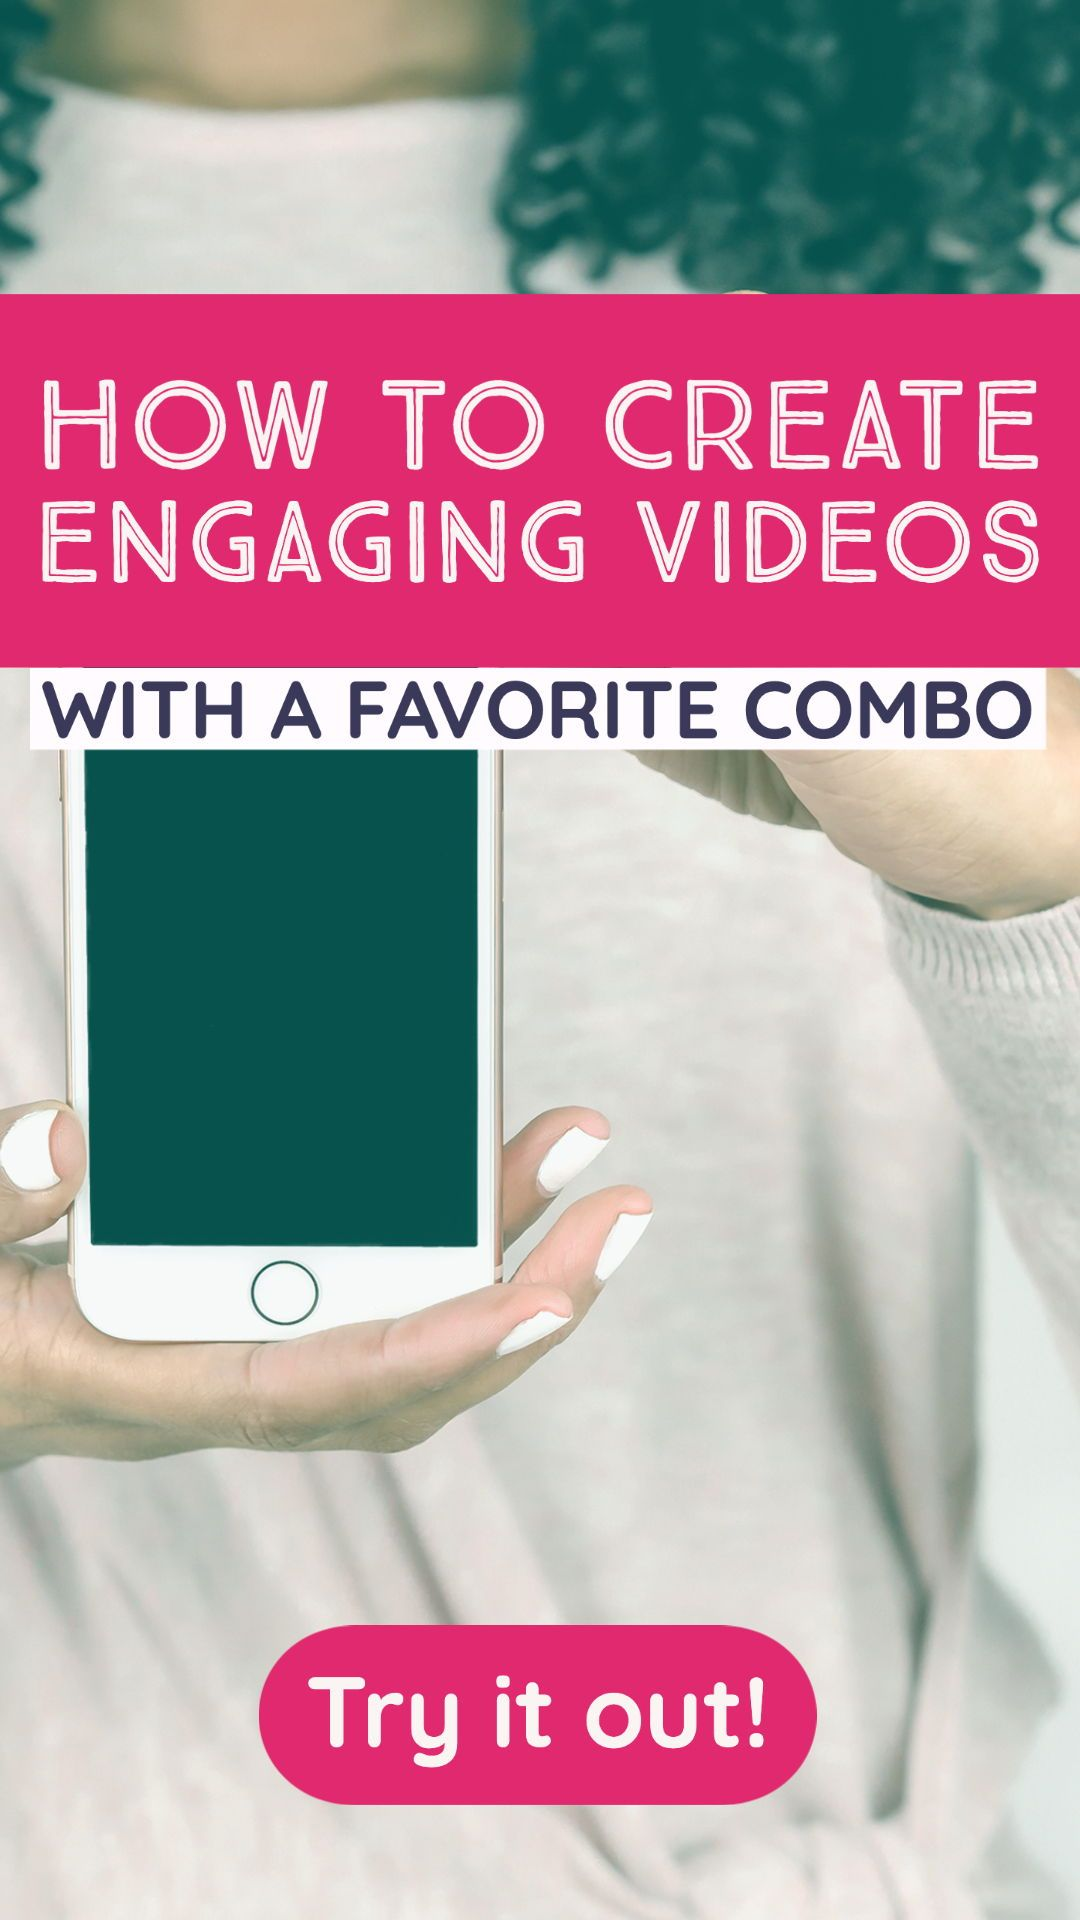 How to Create Engaging Videos with a Favorite Combo in